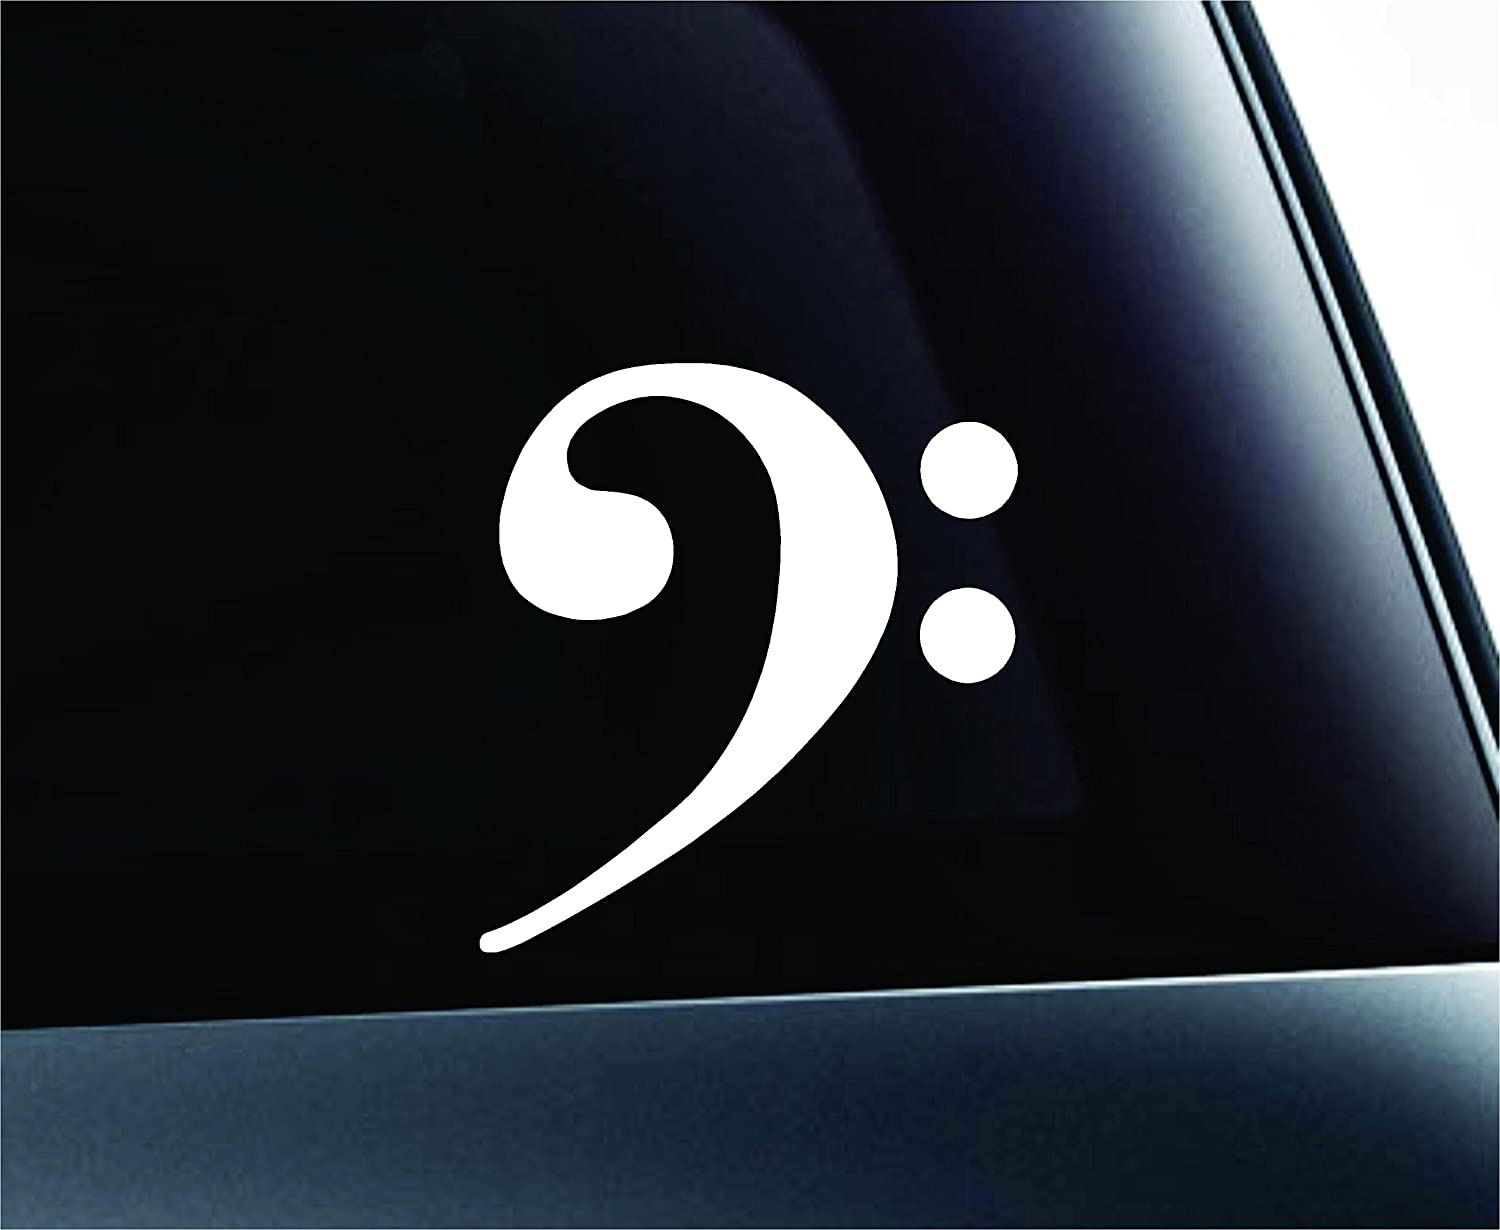 Amazon bass clef f musical note symbol decal funny car truck amazon bass clef f musical note symbol decal funny car truck sticker window white automotive buycottarizona Image collections